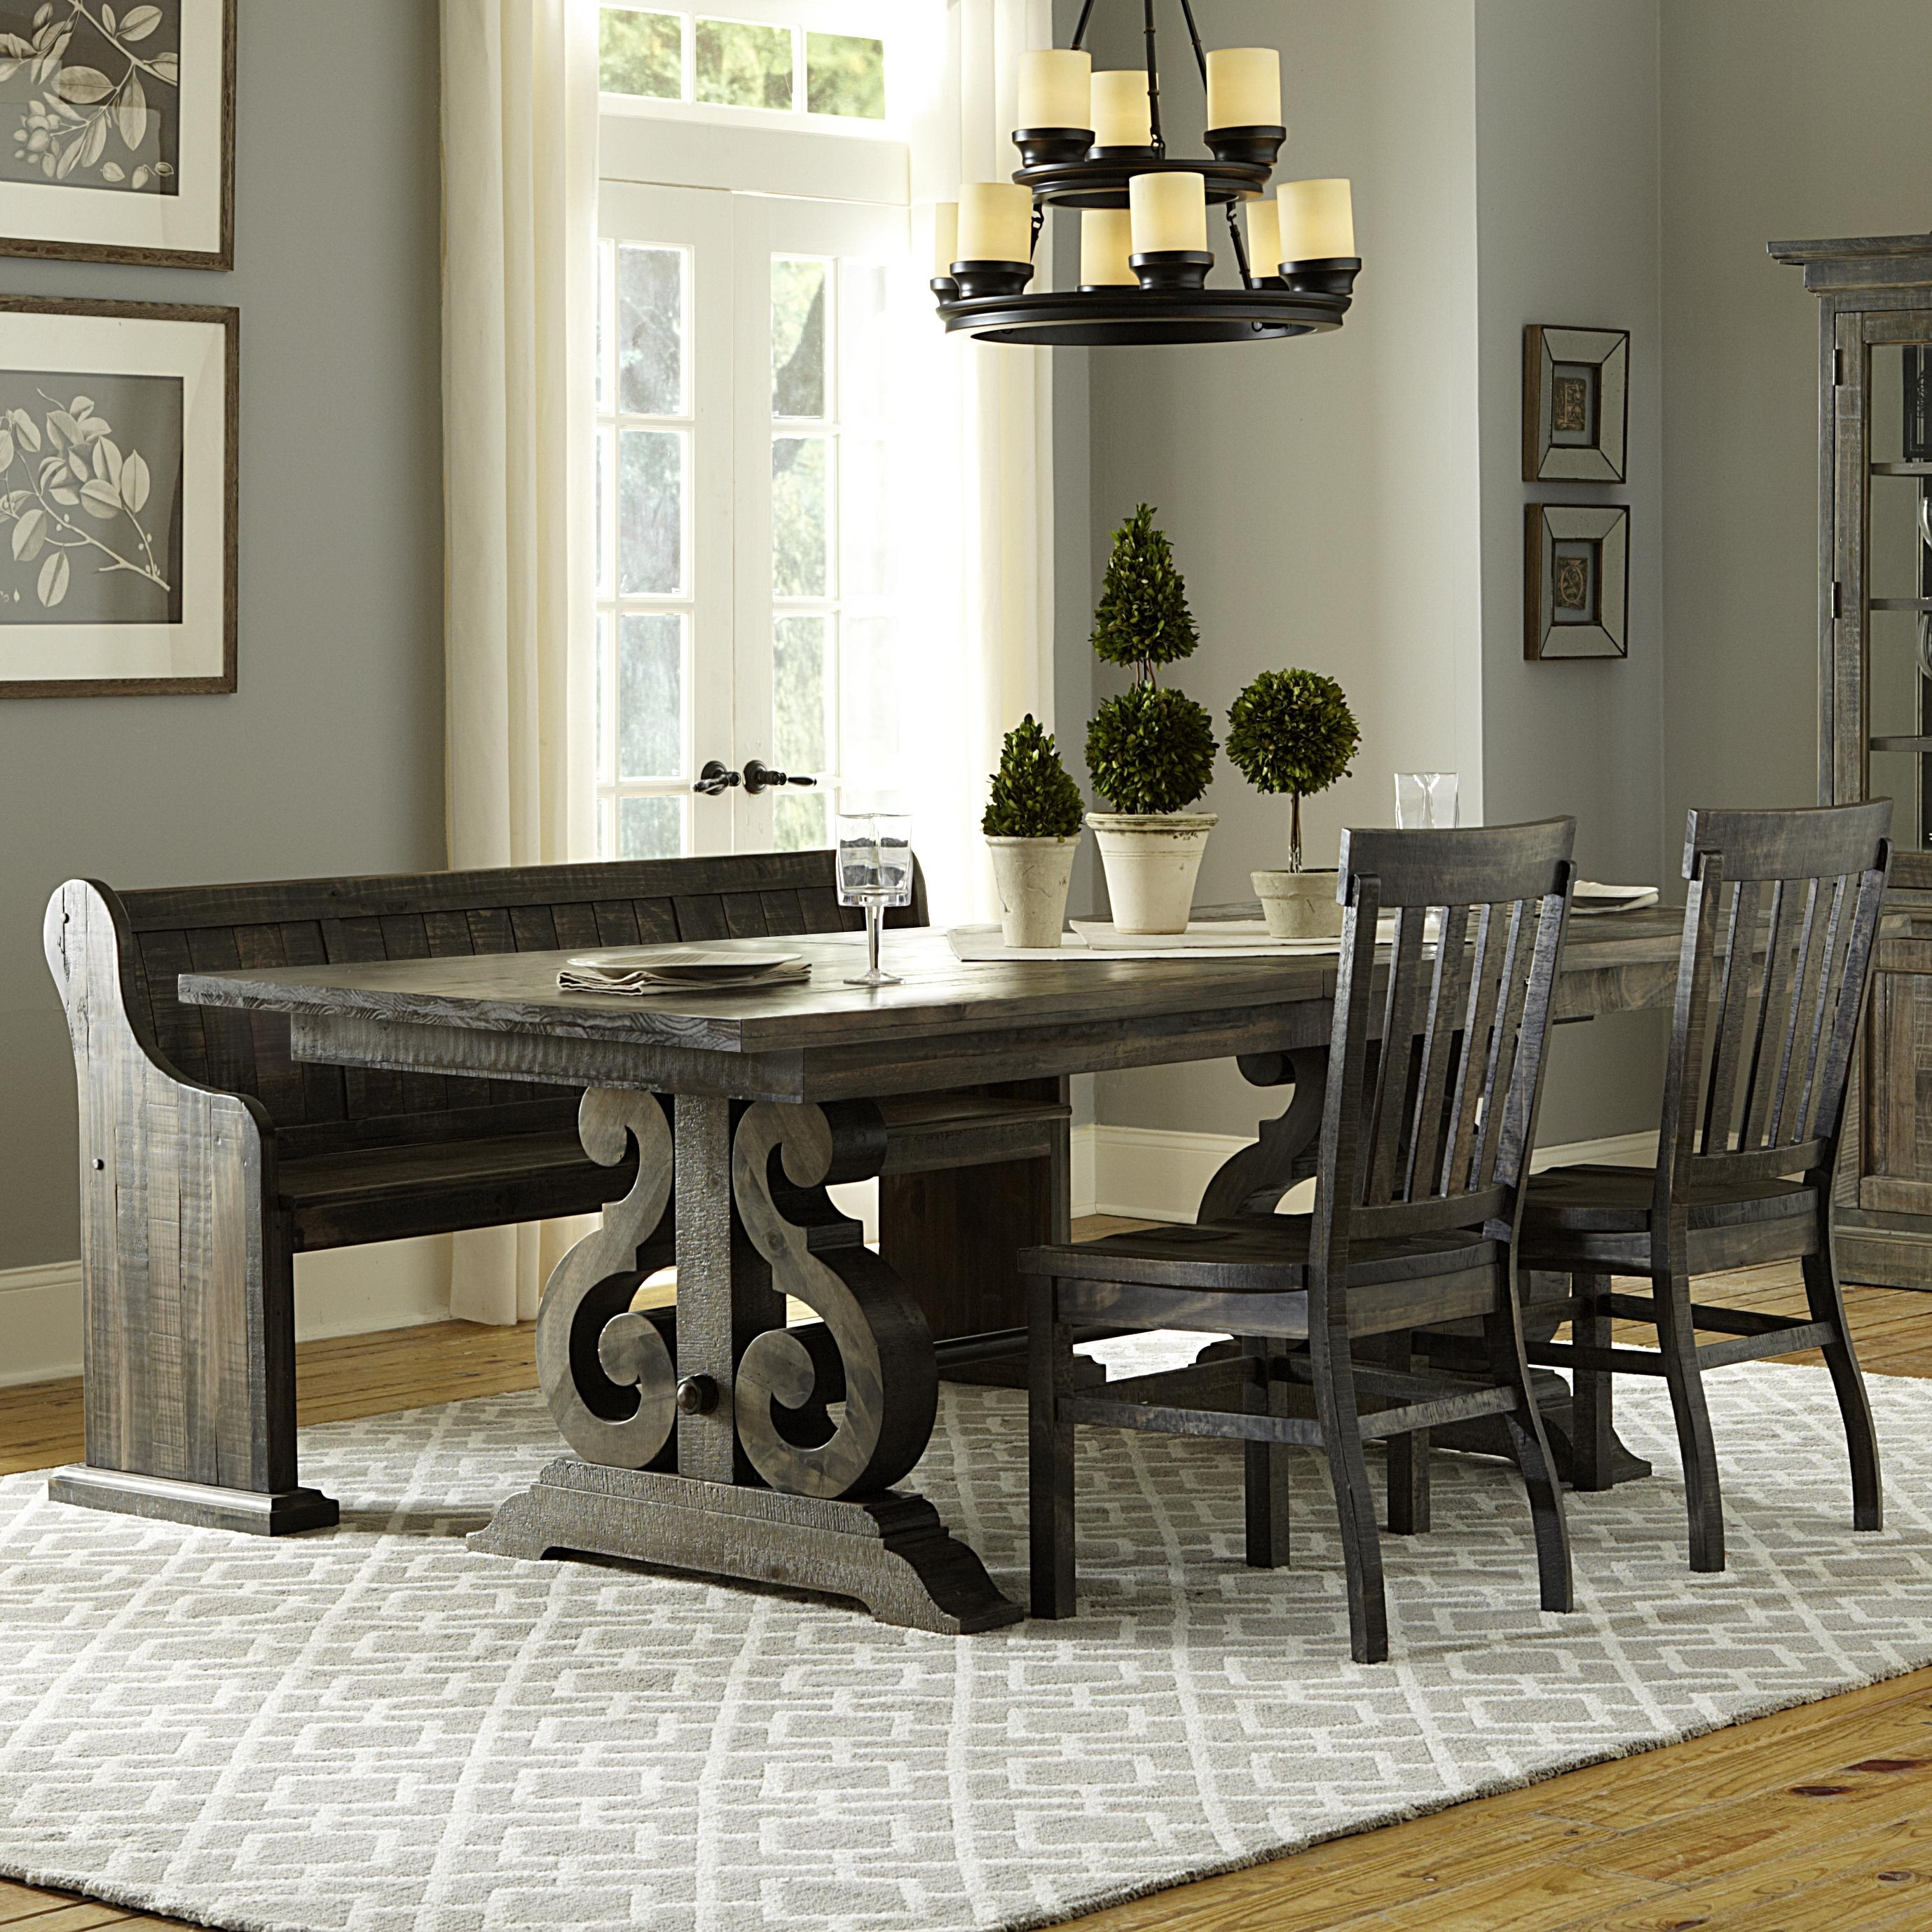 Table And Chair Sets | Baton Rouge And Lafayette, Louisiana Table In Most Up To Date Market 6 Piece Dining Sets With Host And Side Chairs (View 7 of 20)